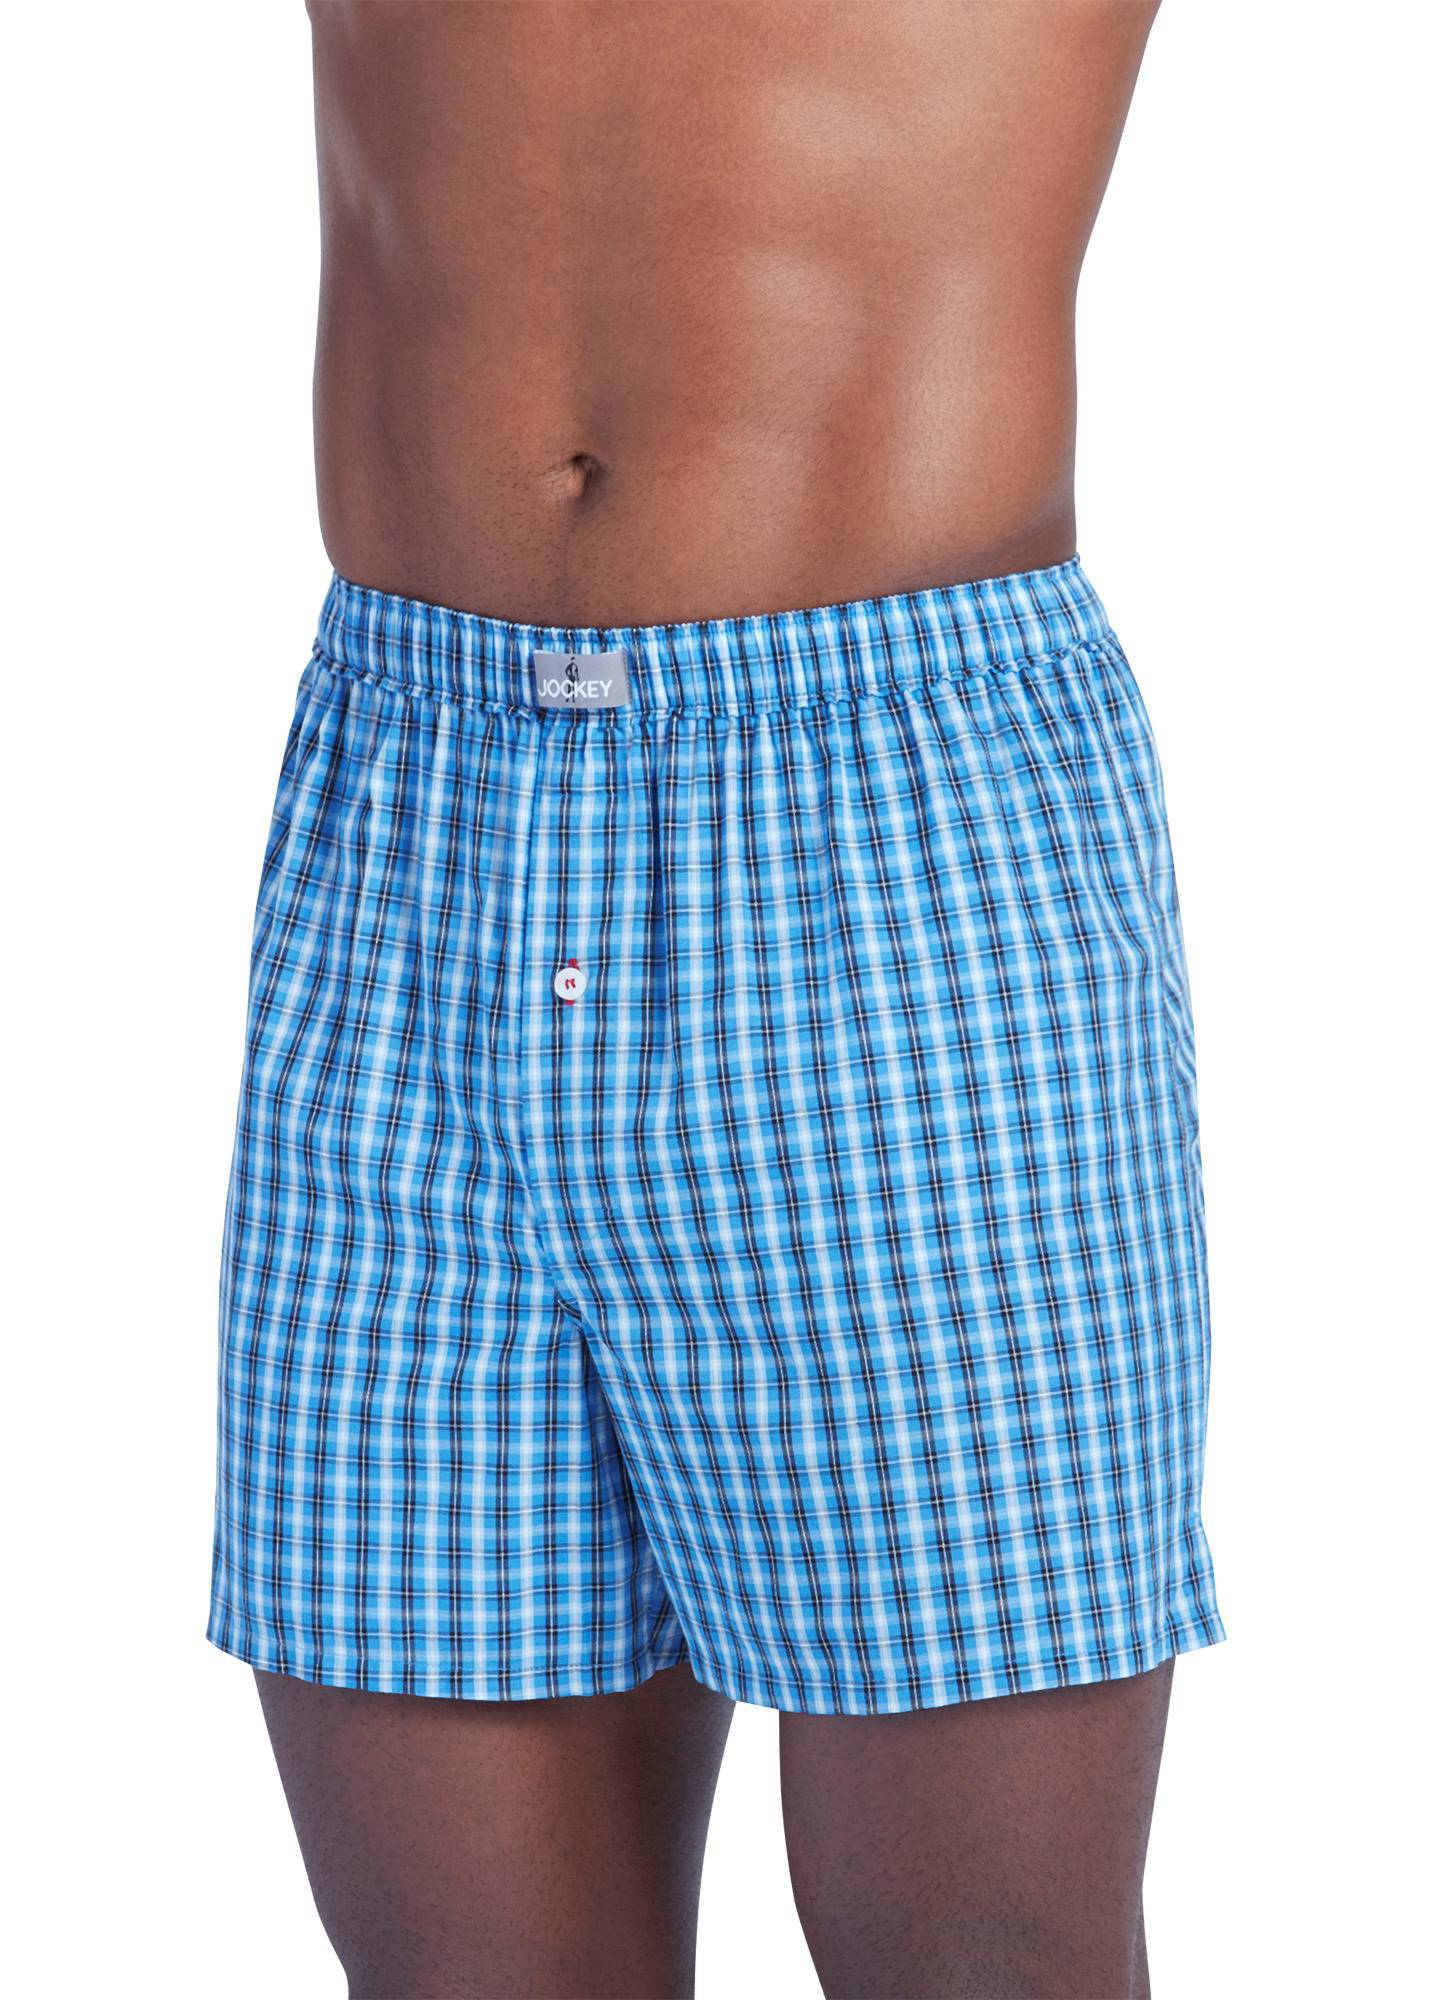 Free Shipping! Cotton Boxers - Men's Underwear and Boxers at HisRoom.